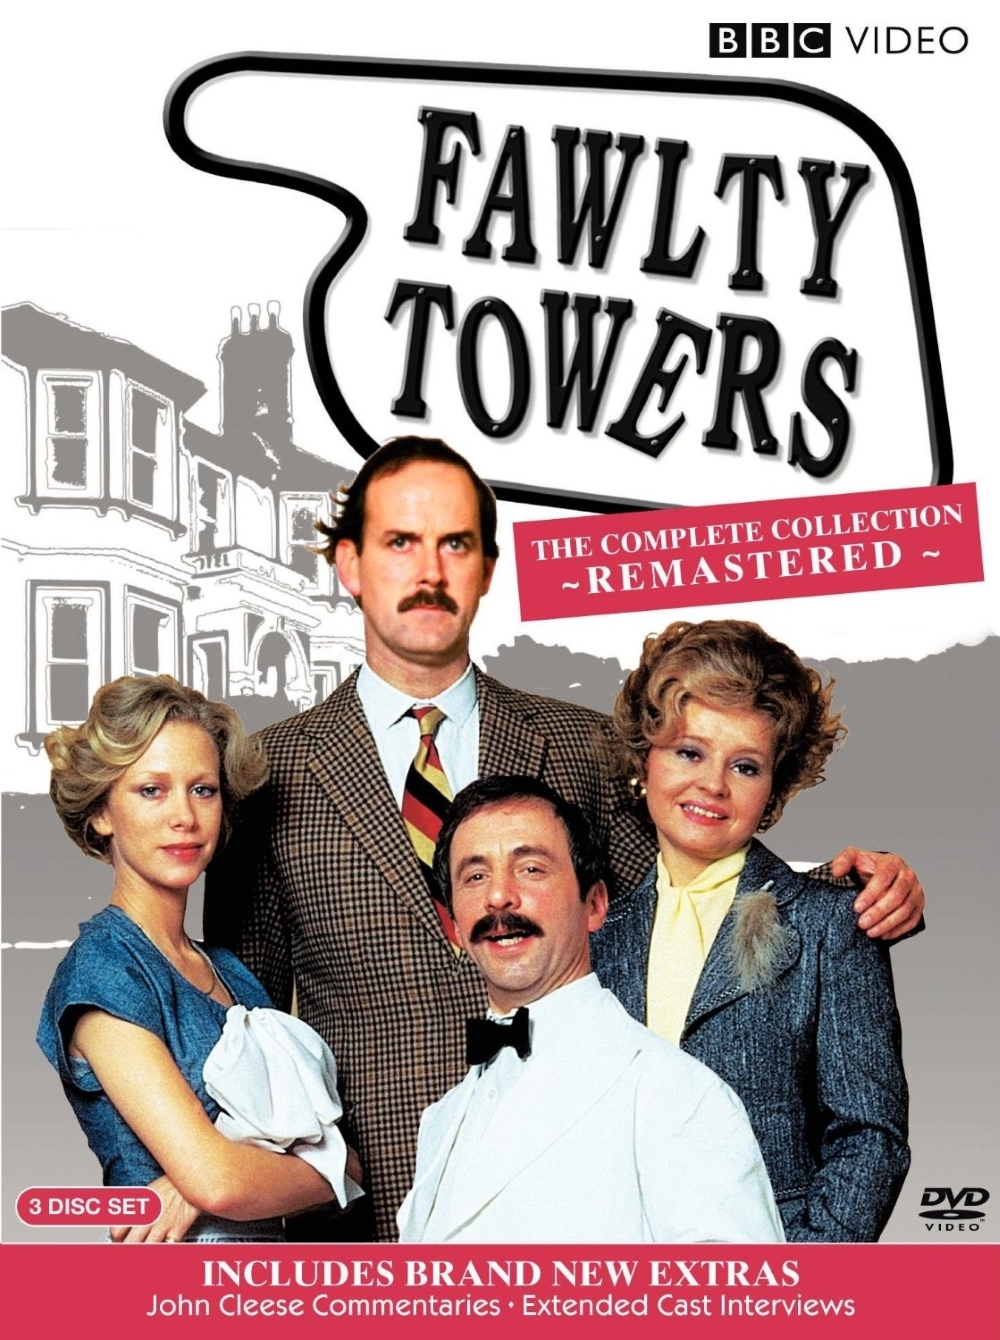 Fawlty towers the complete collection  dvd  2009  3 disc set  special edition